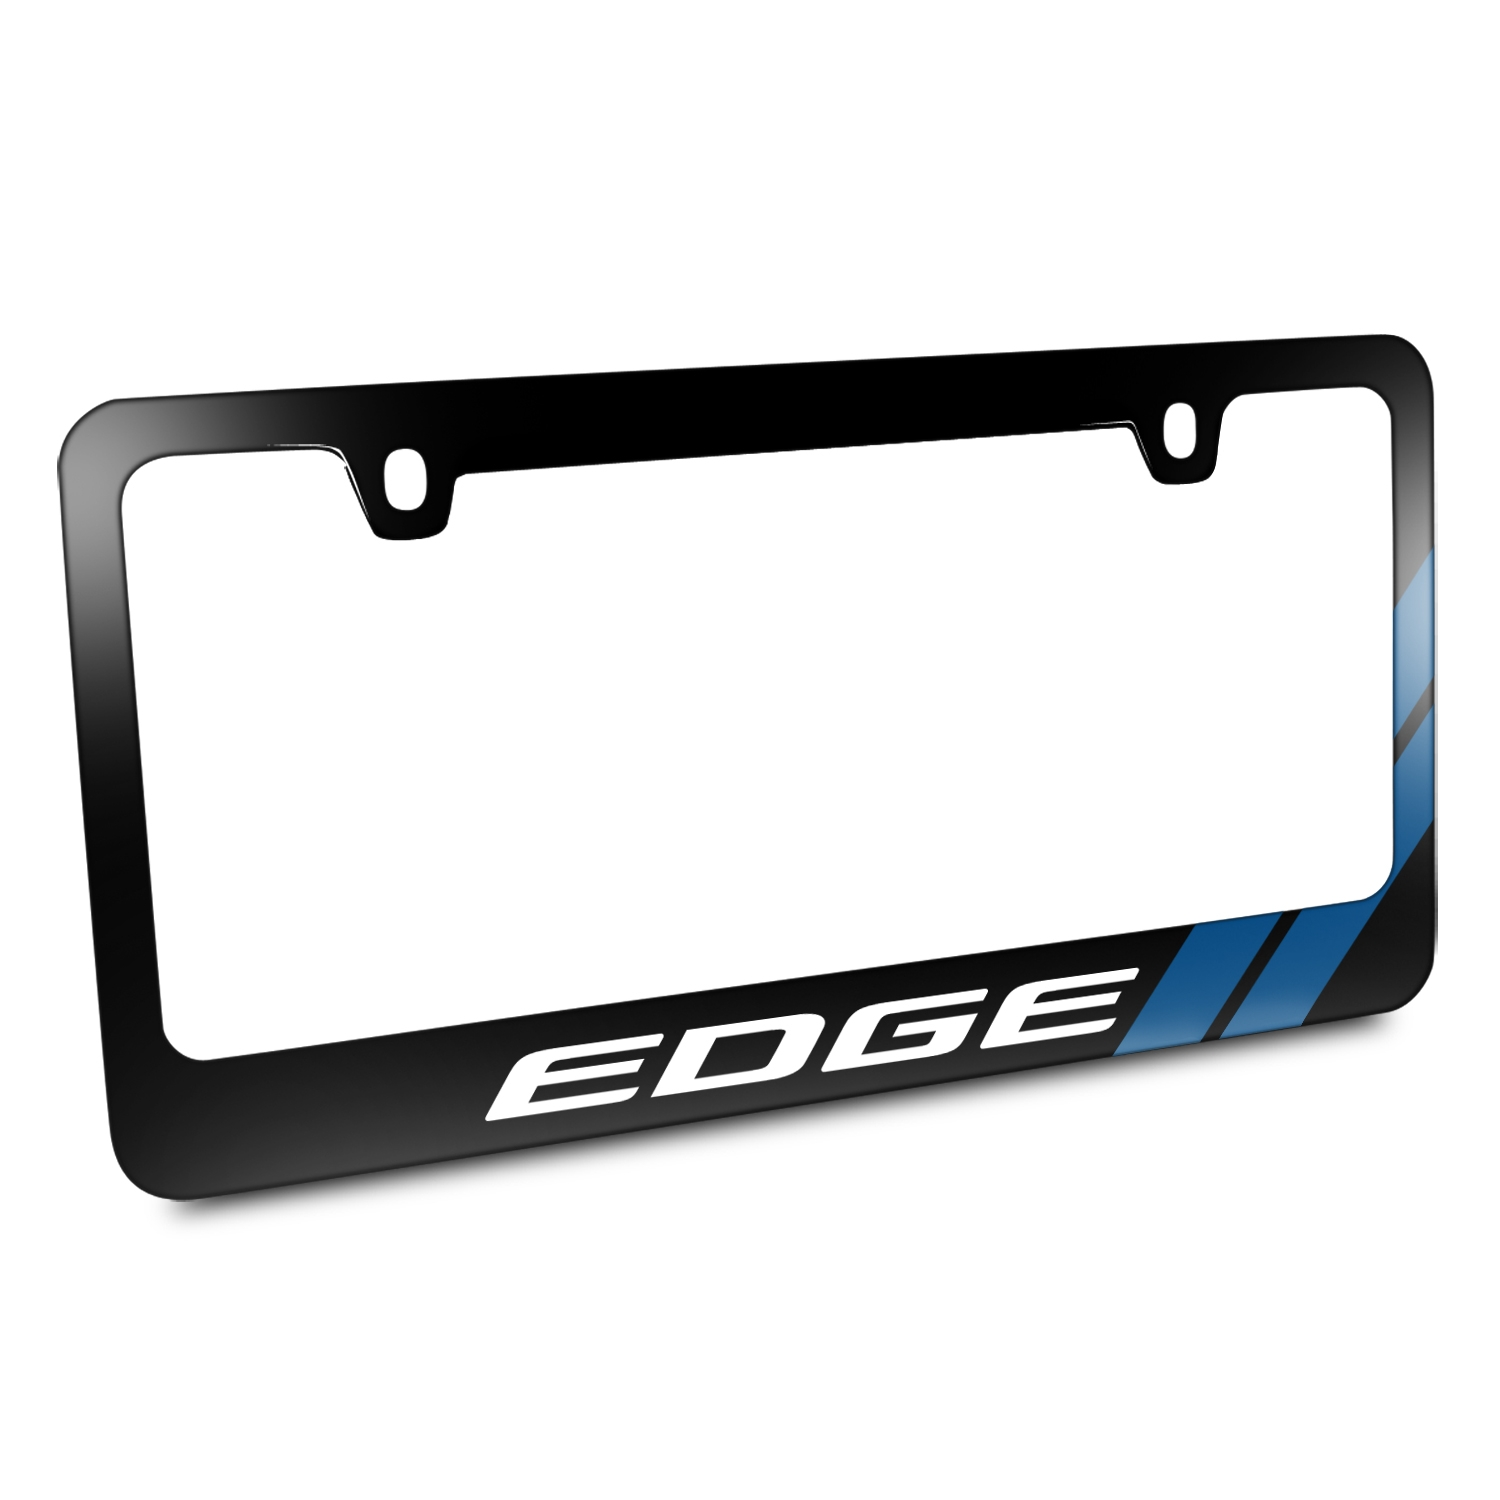 Ford Edge Blue Sports Stripe Black Metal License Plate Frame